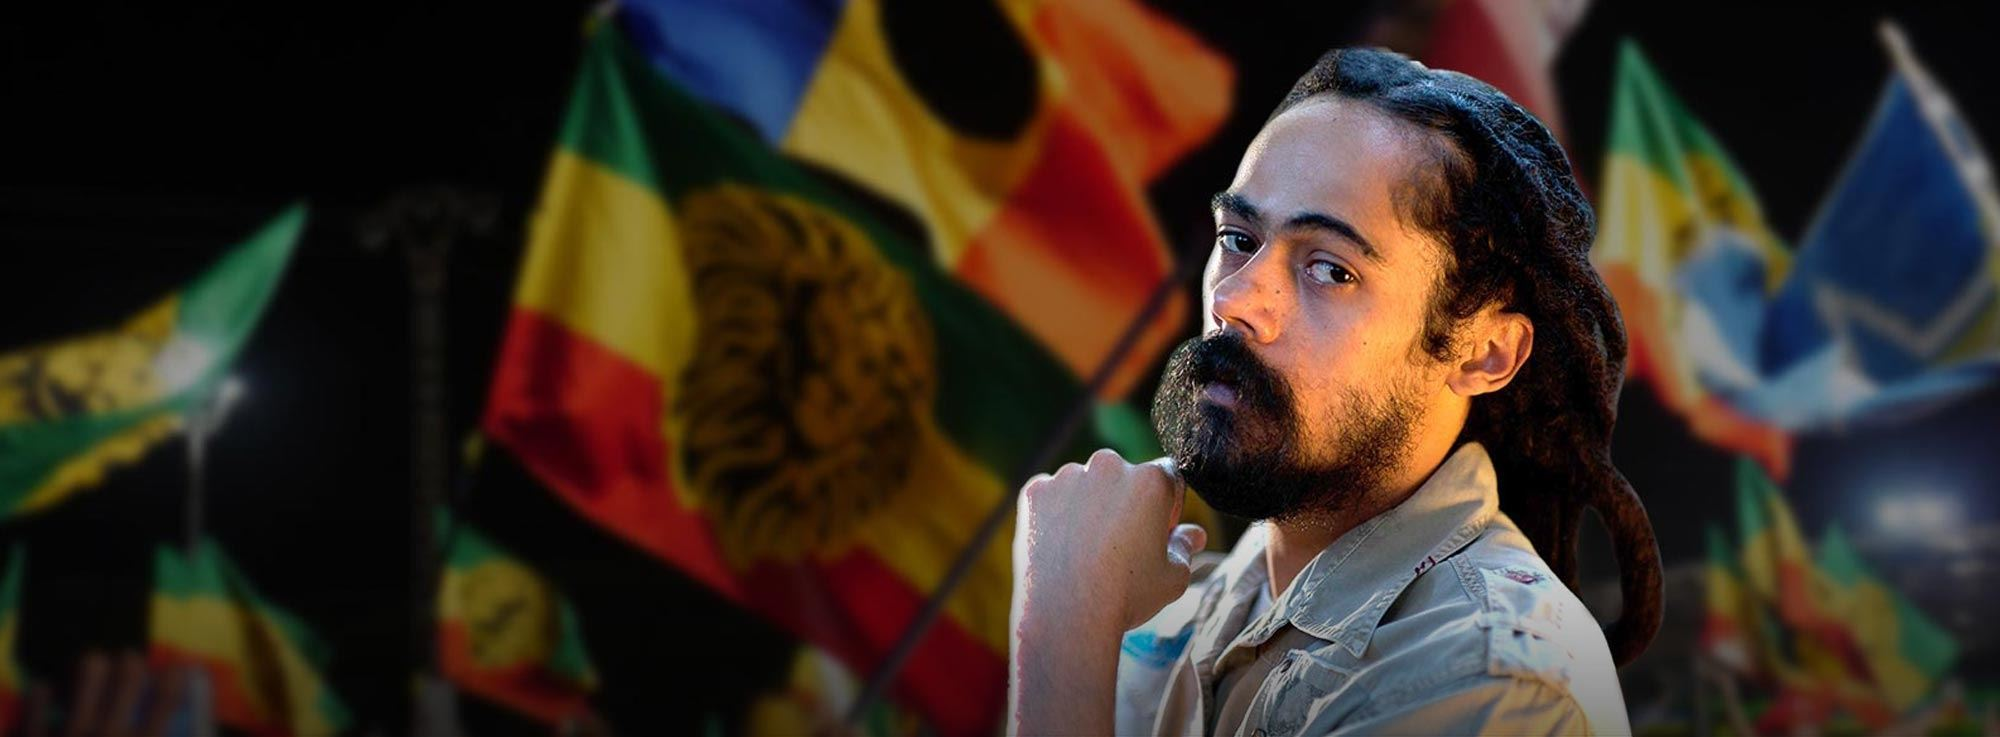 Gallipoli: Damian Marley in concerto